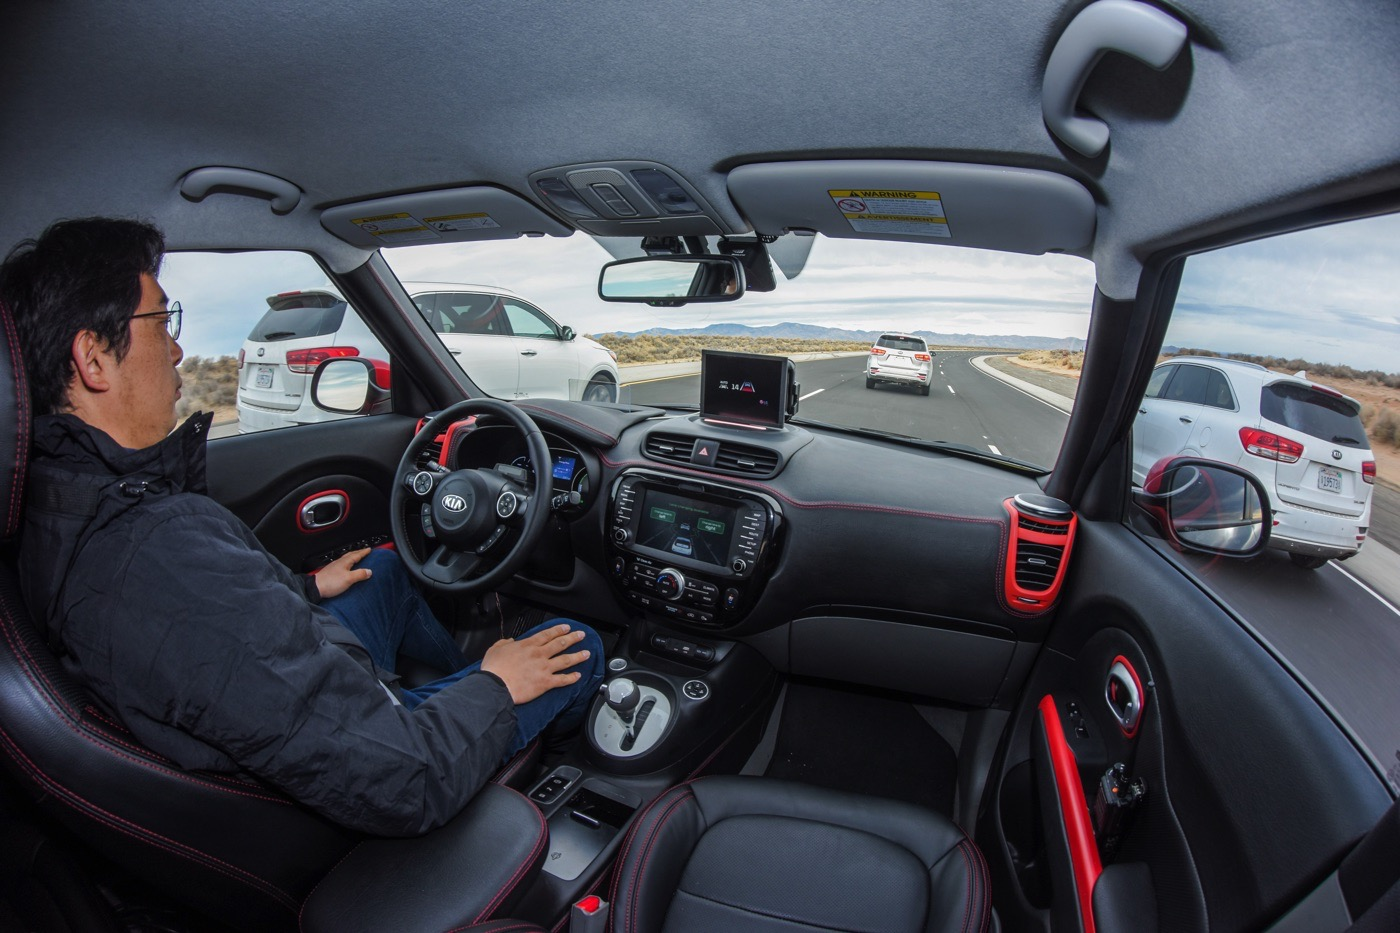 Kia plans to deliver semi-autonomous driving features in 2020